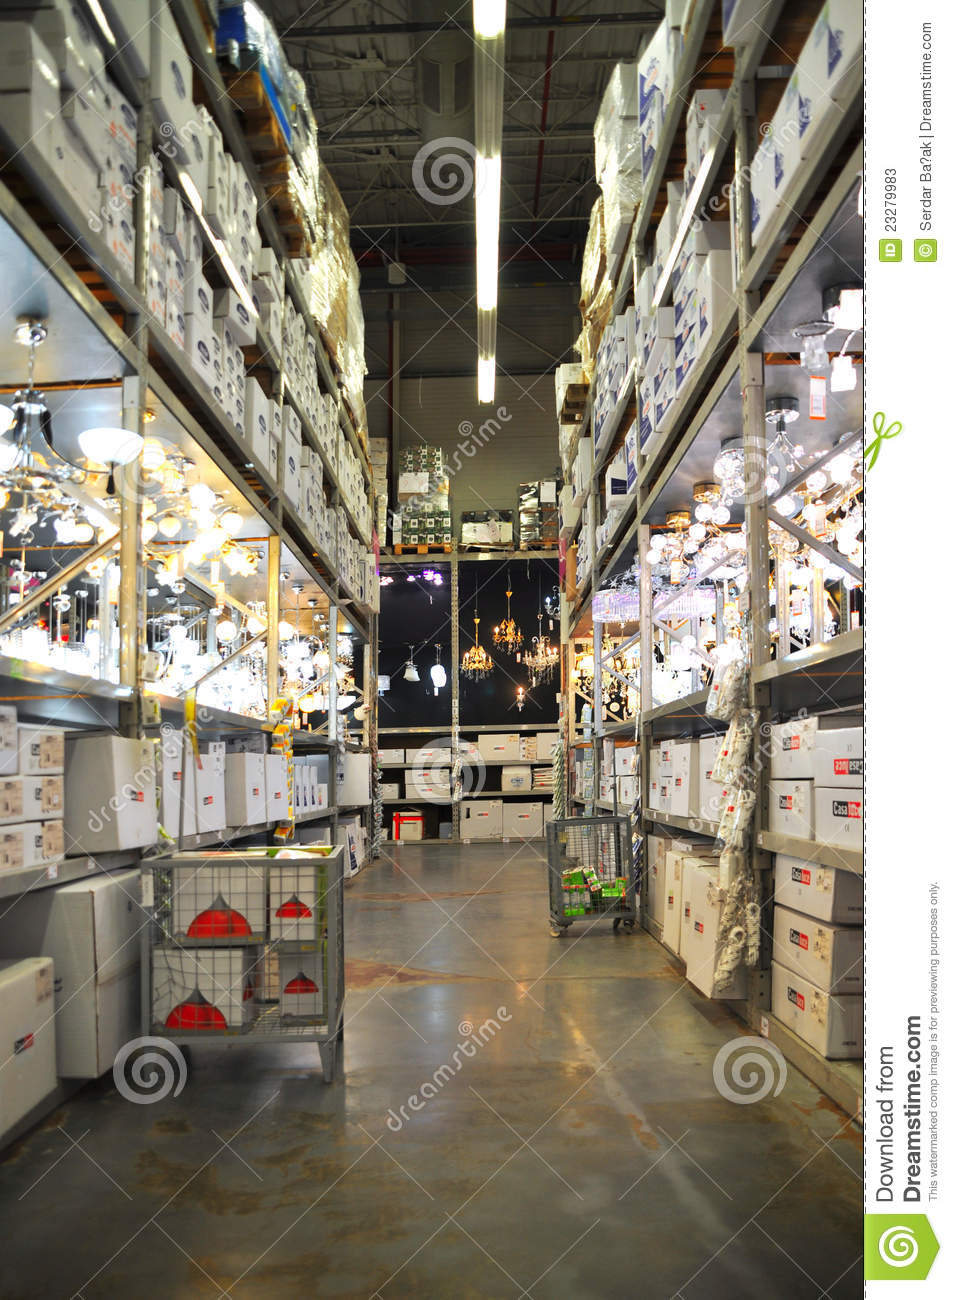 Koçtaş, home improvement store, large warehouse, lamp section.